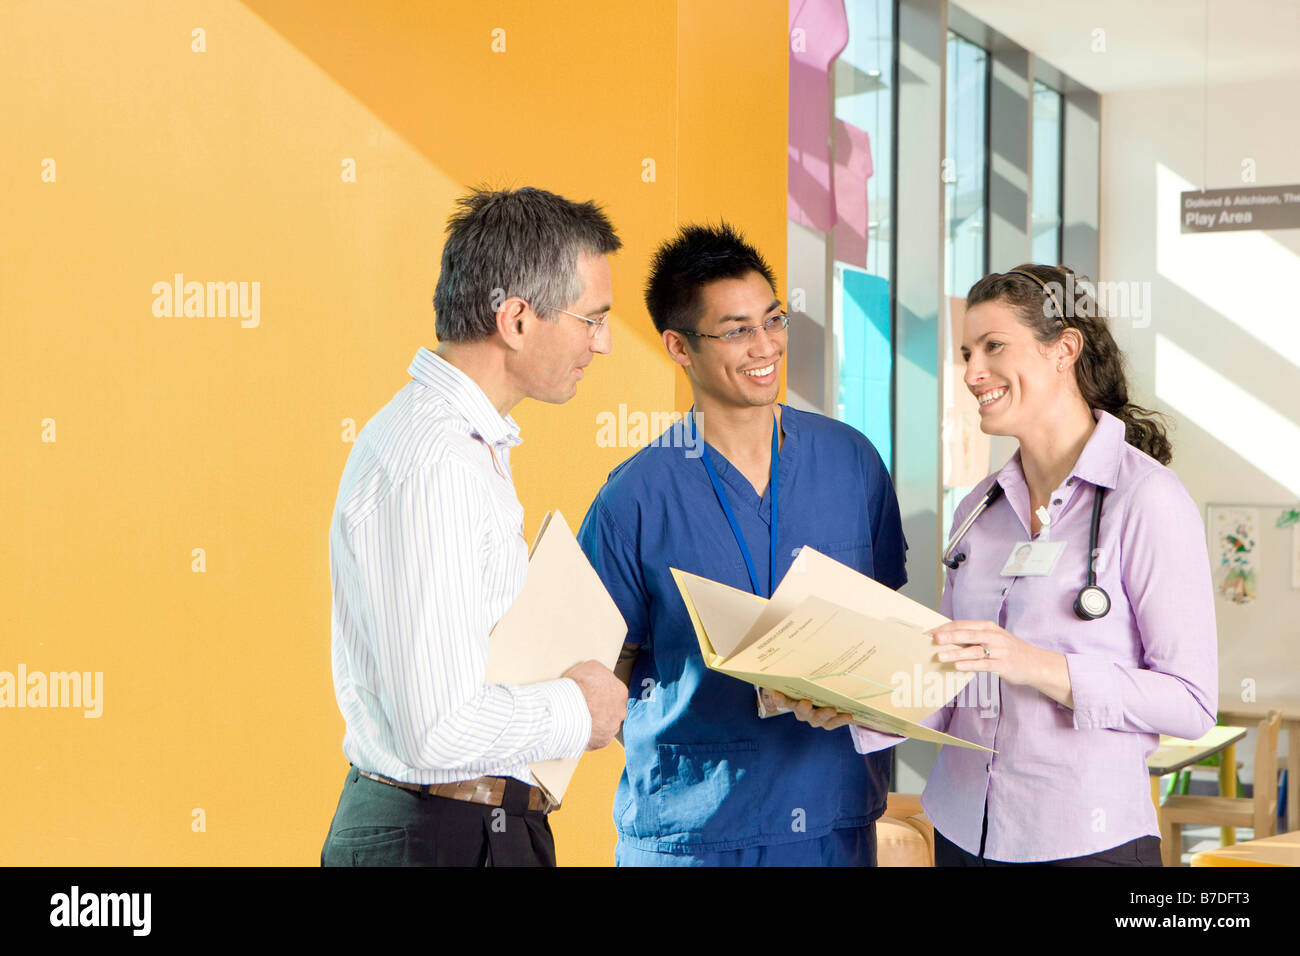 Three medical colleagues talking - Stock Image